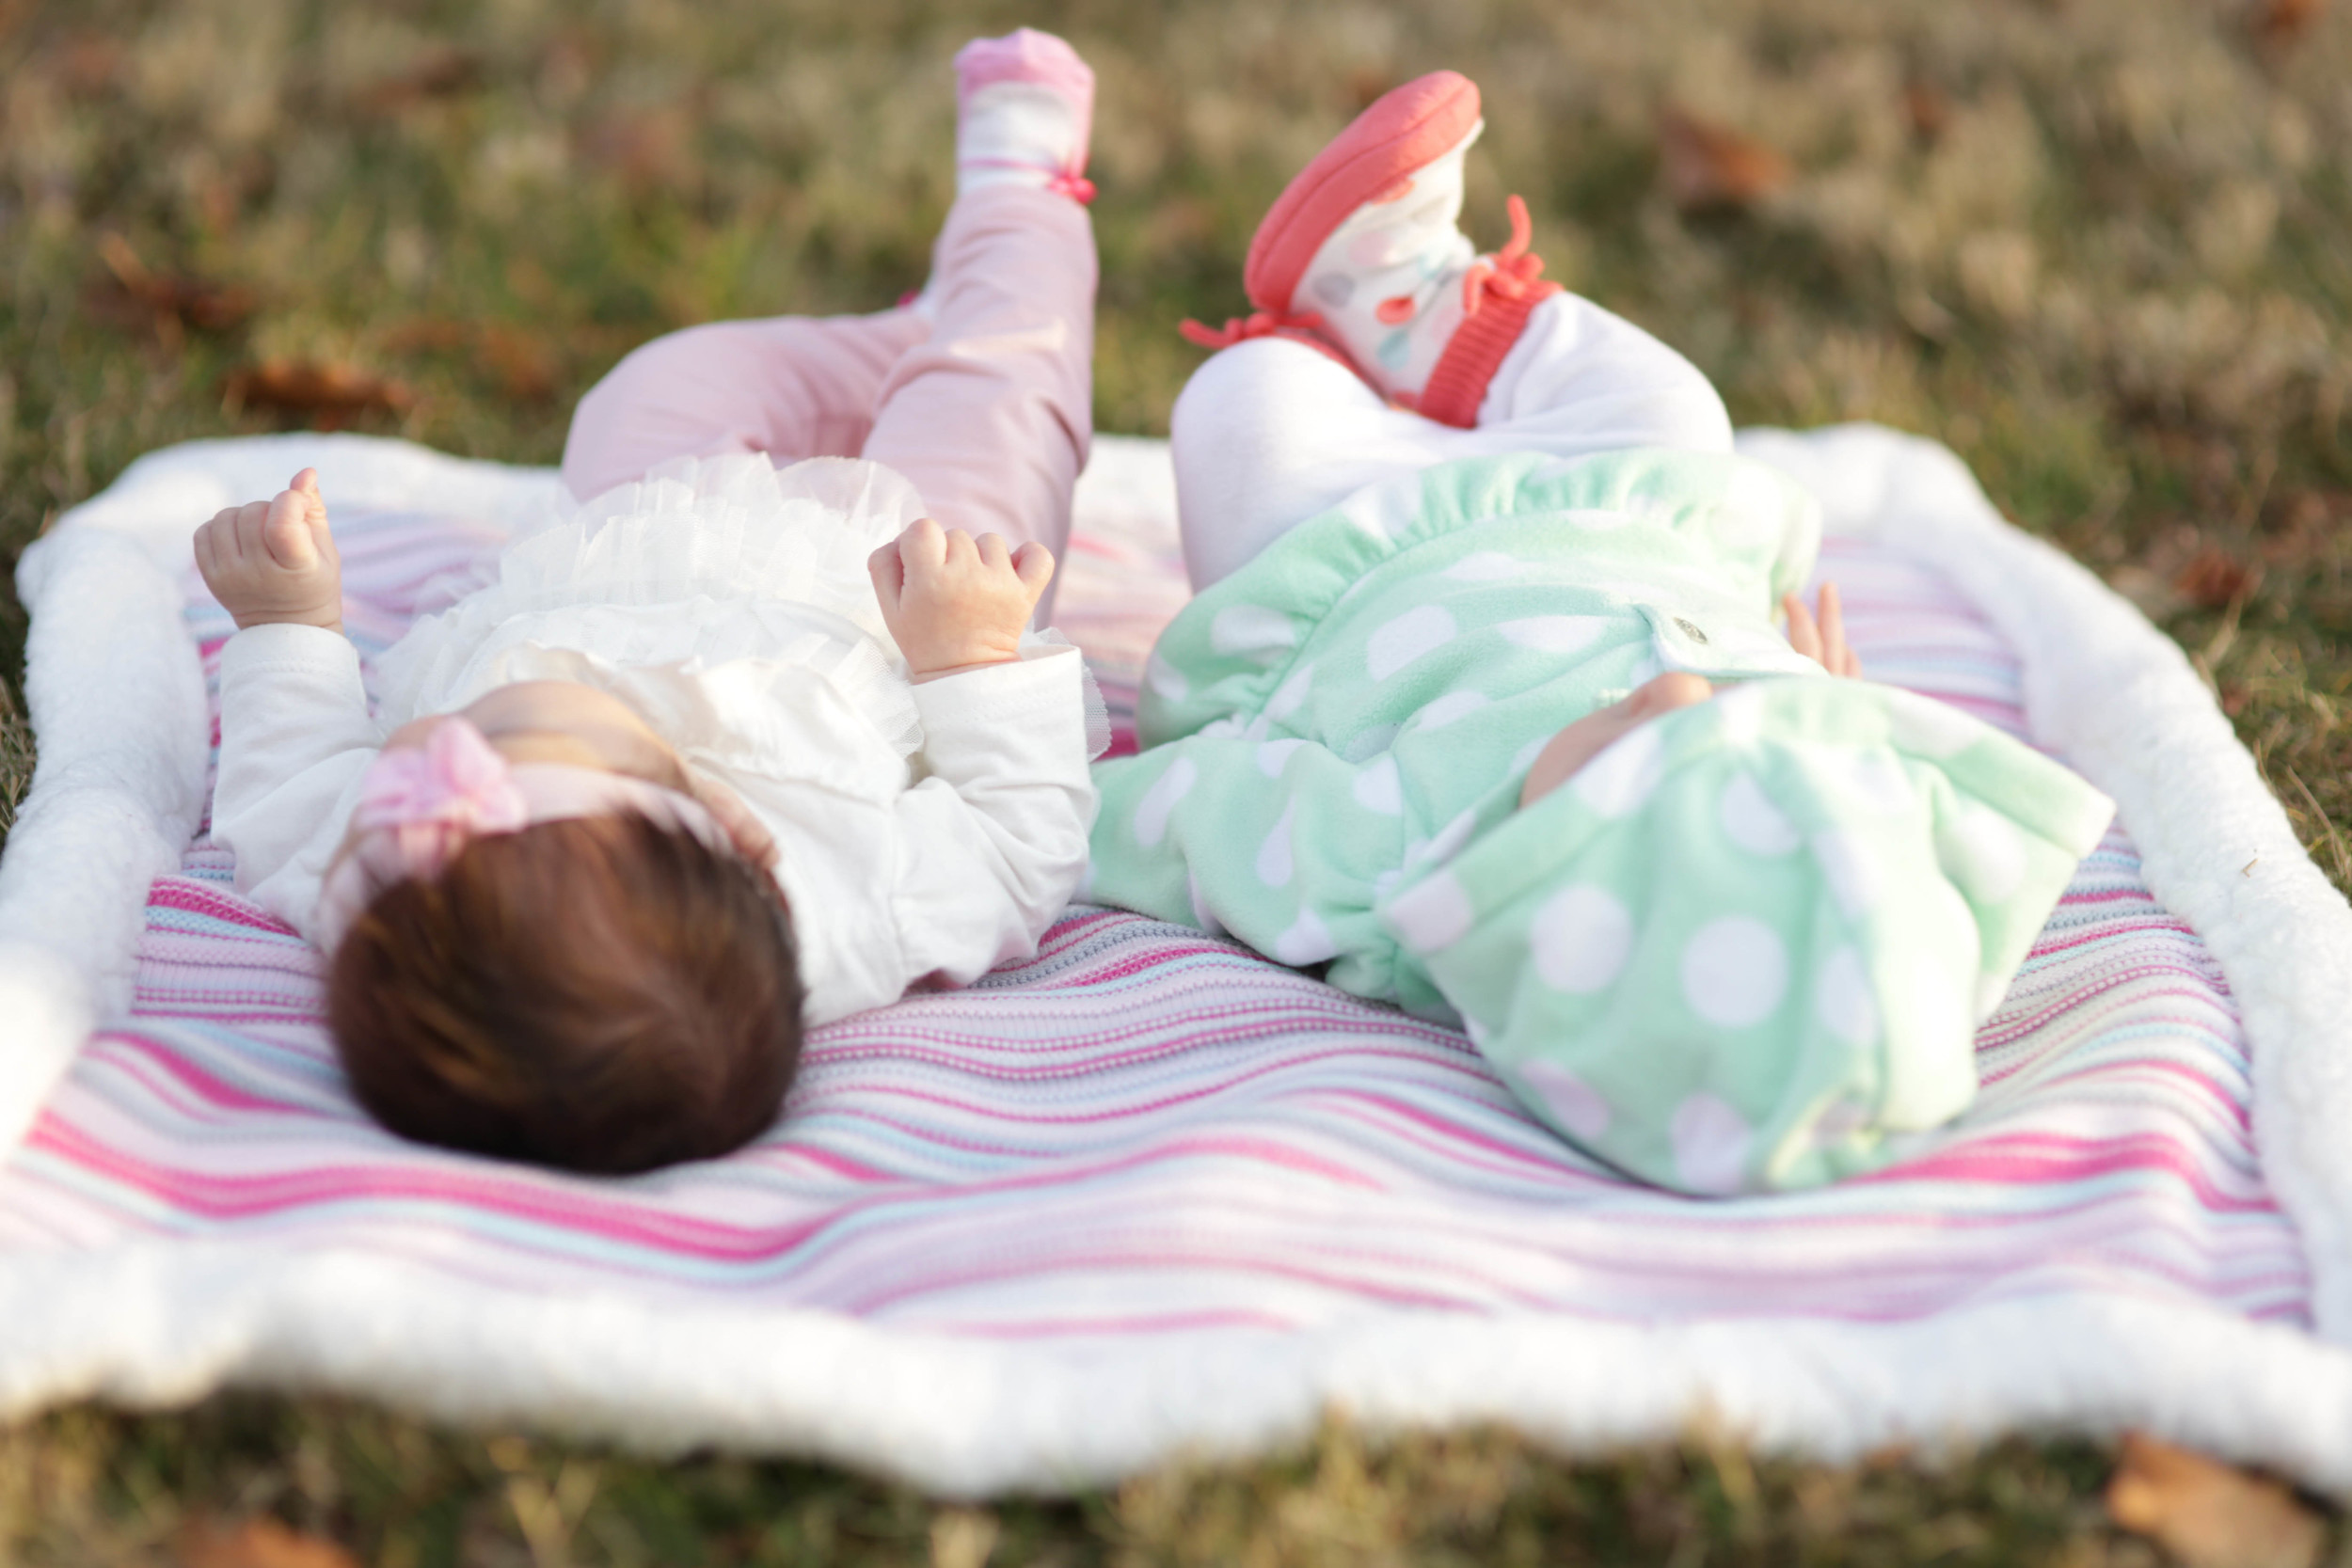 Anna and Laken chilin' in the park. I love how they have the same foot up! :)